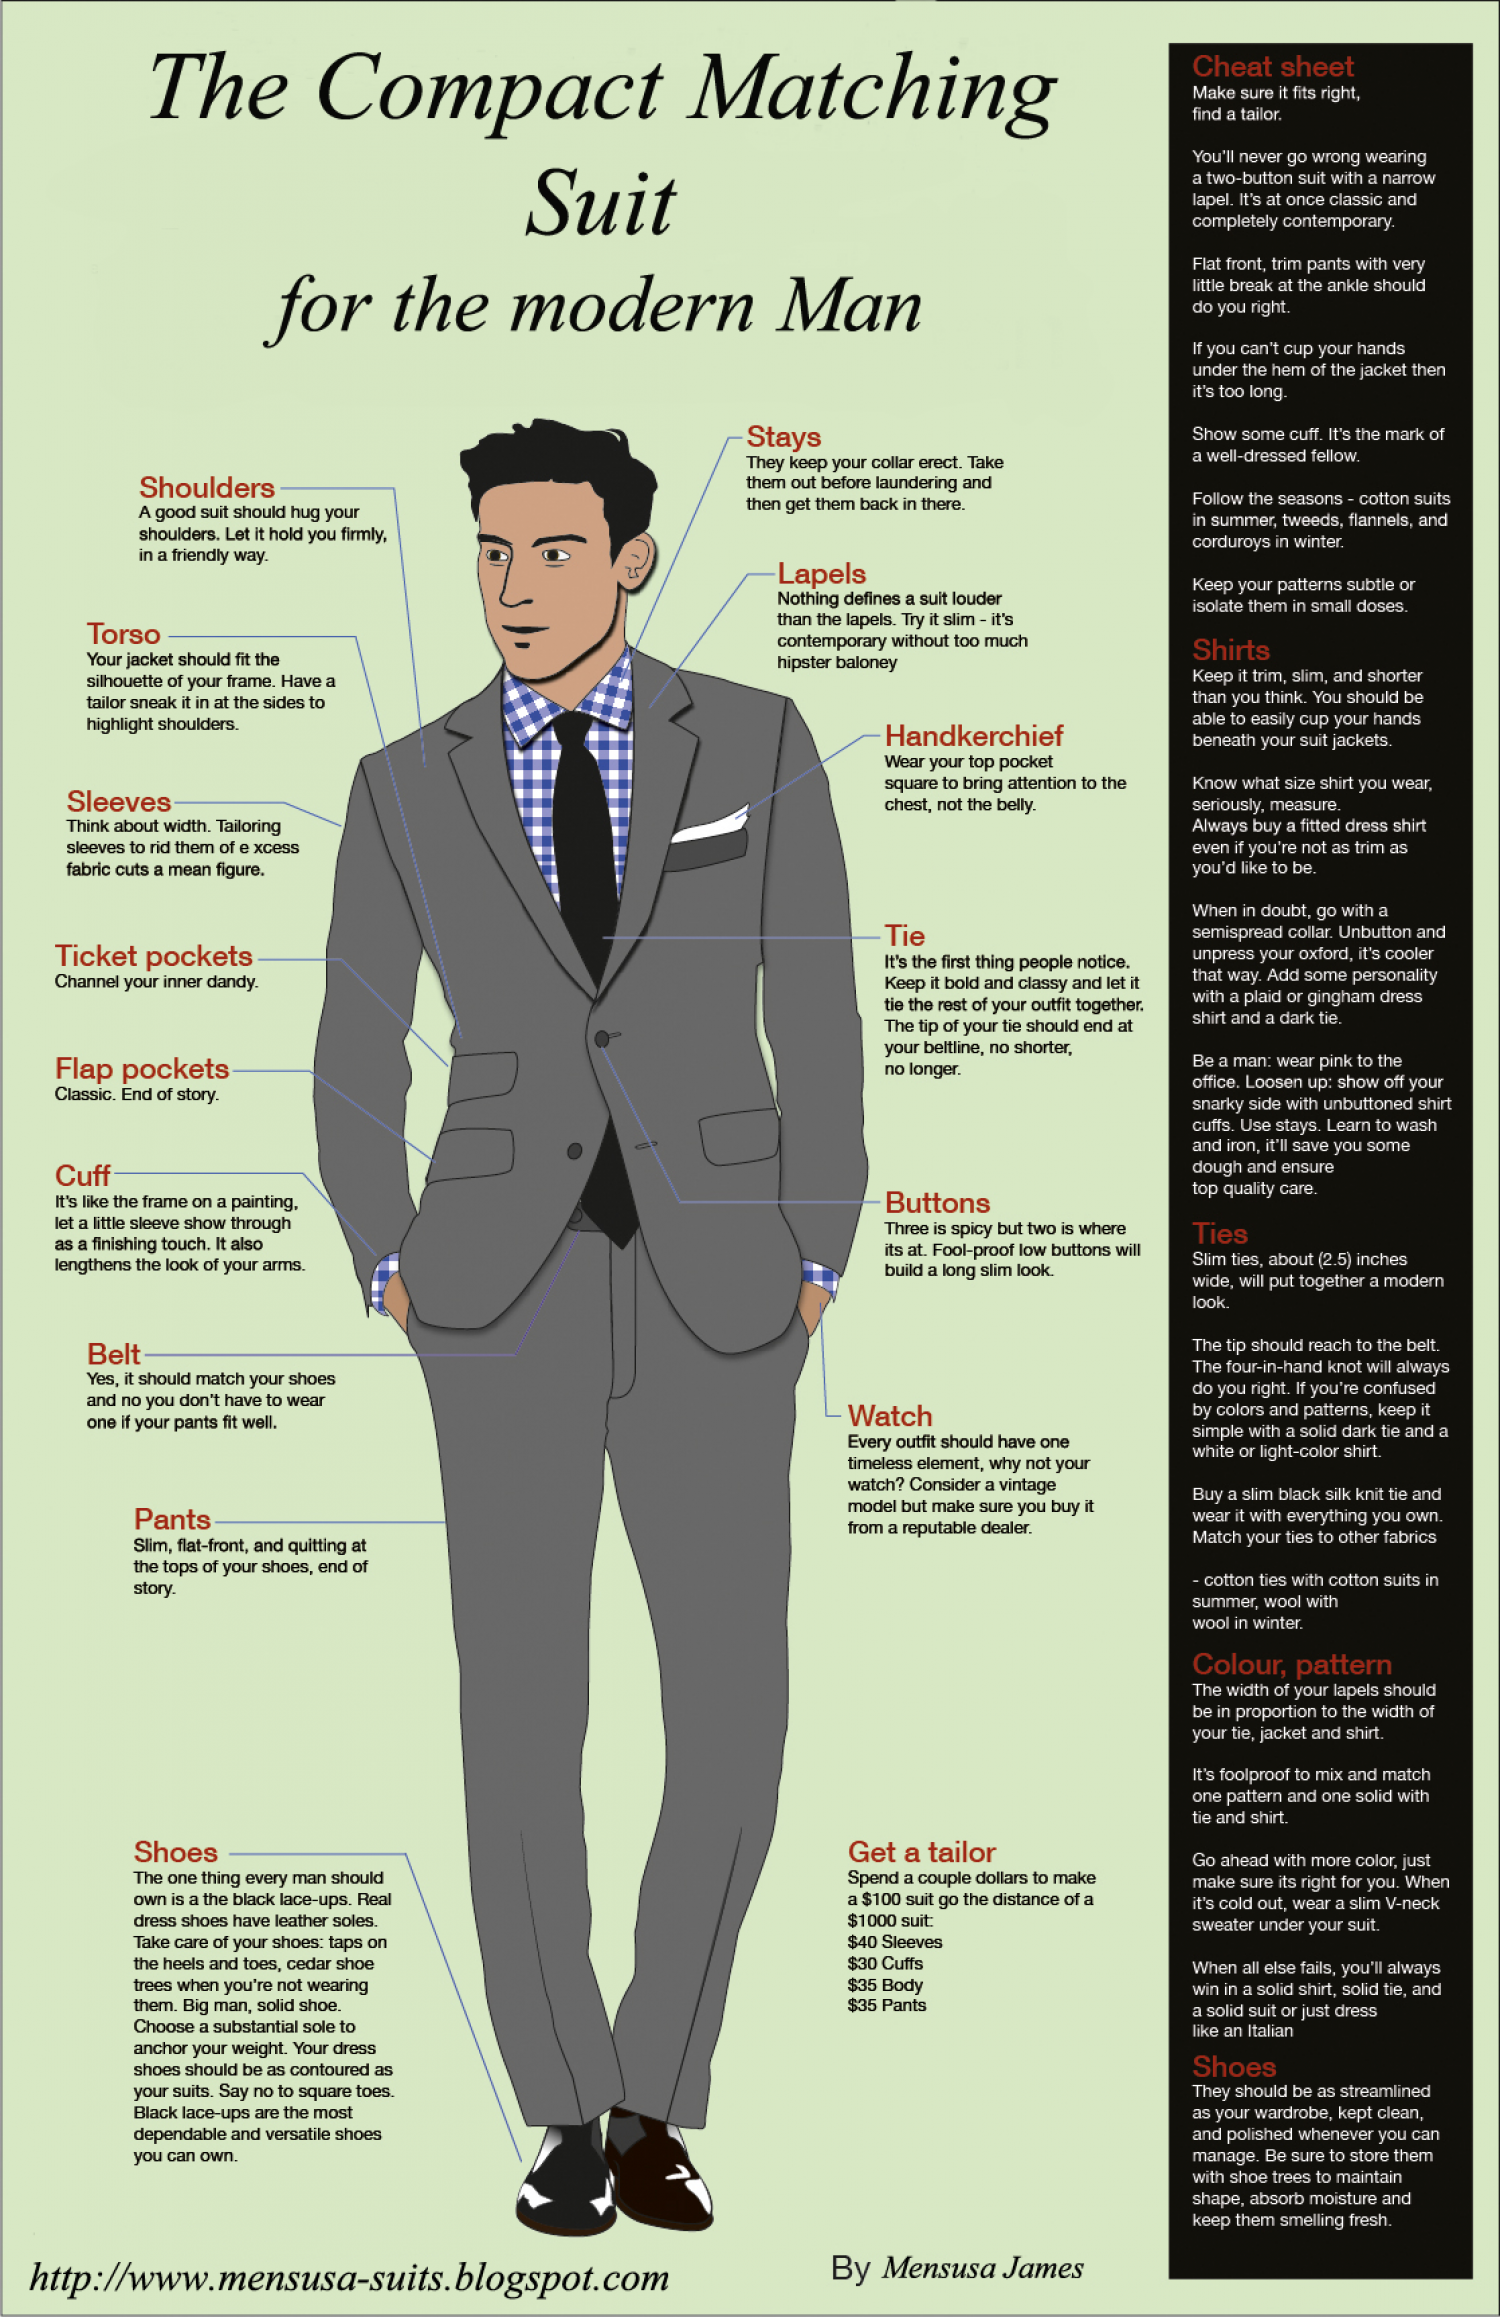 Mensusa - Compact Matching Suit Details | Visual.ly